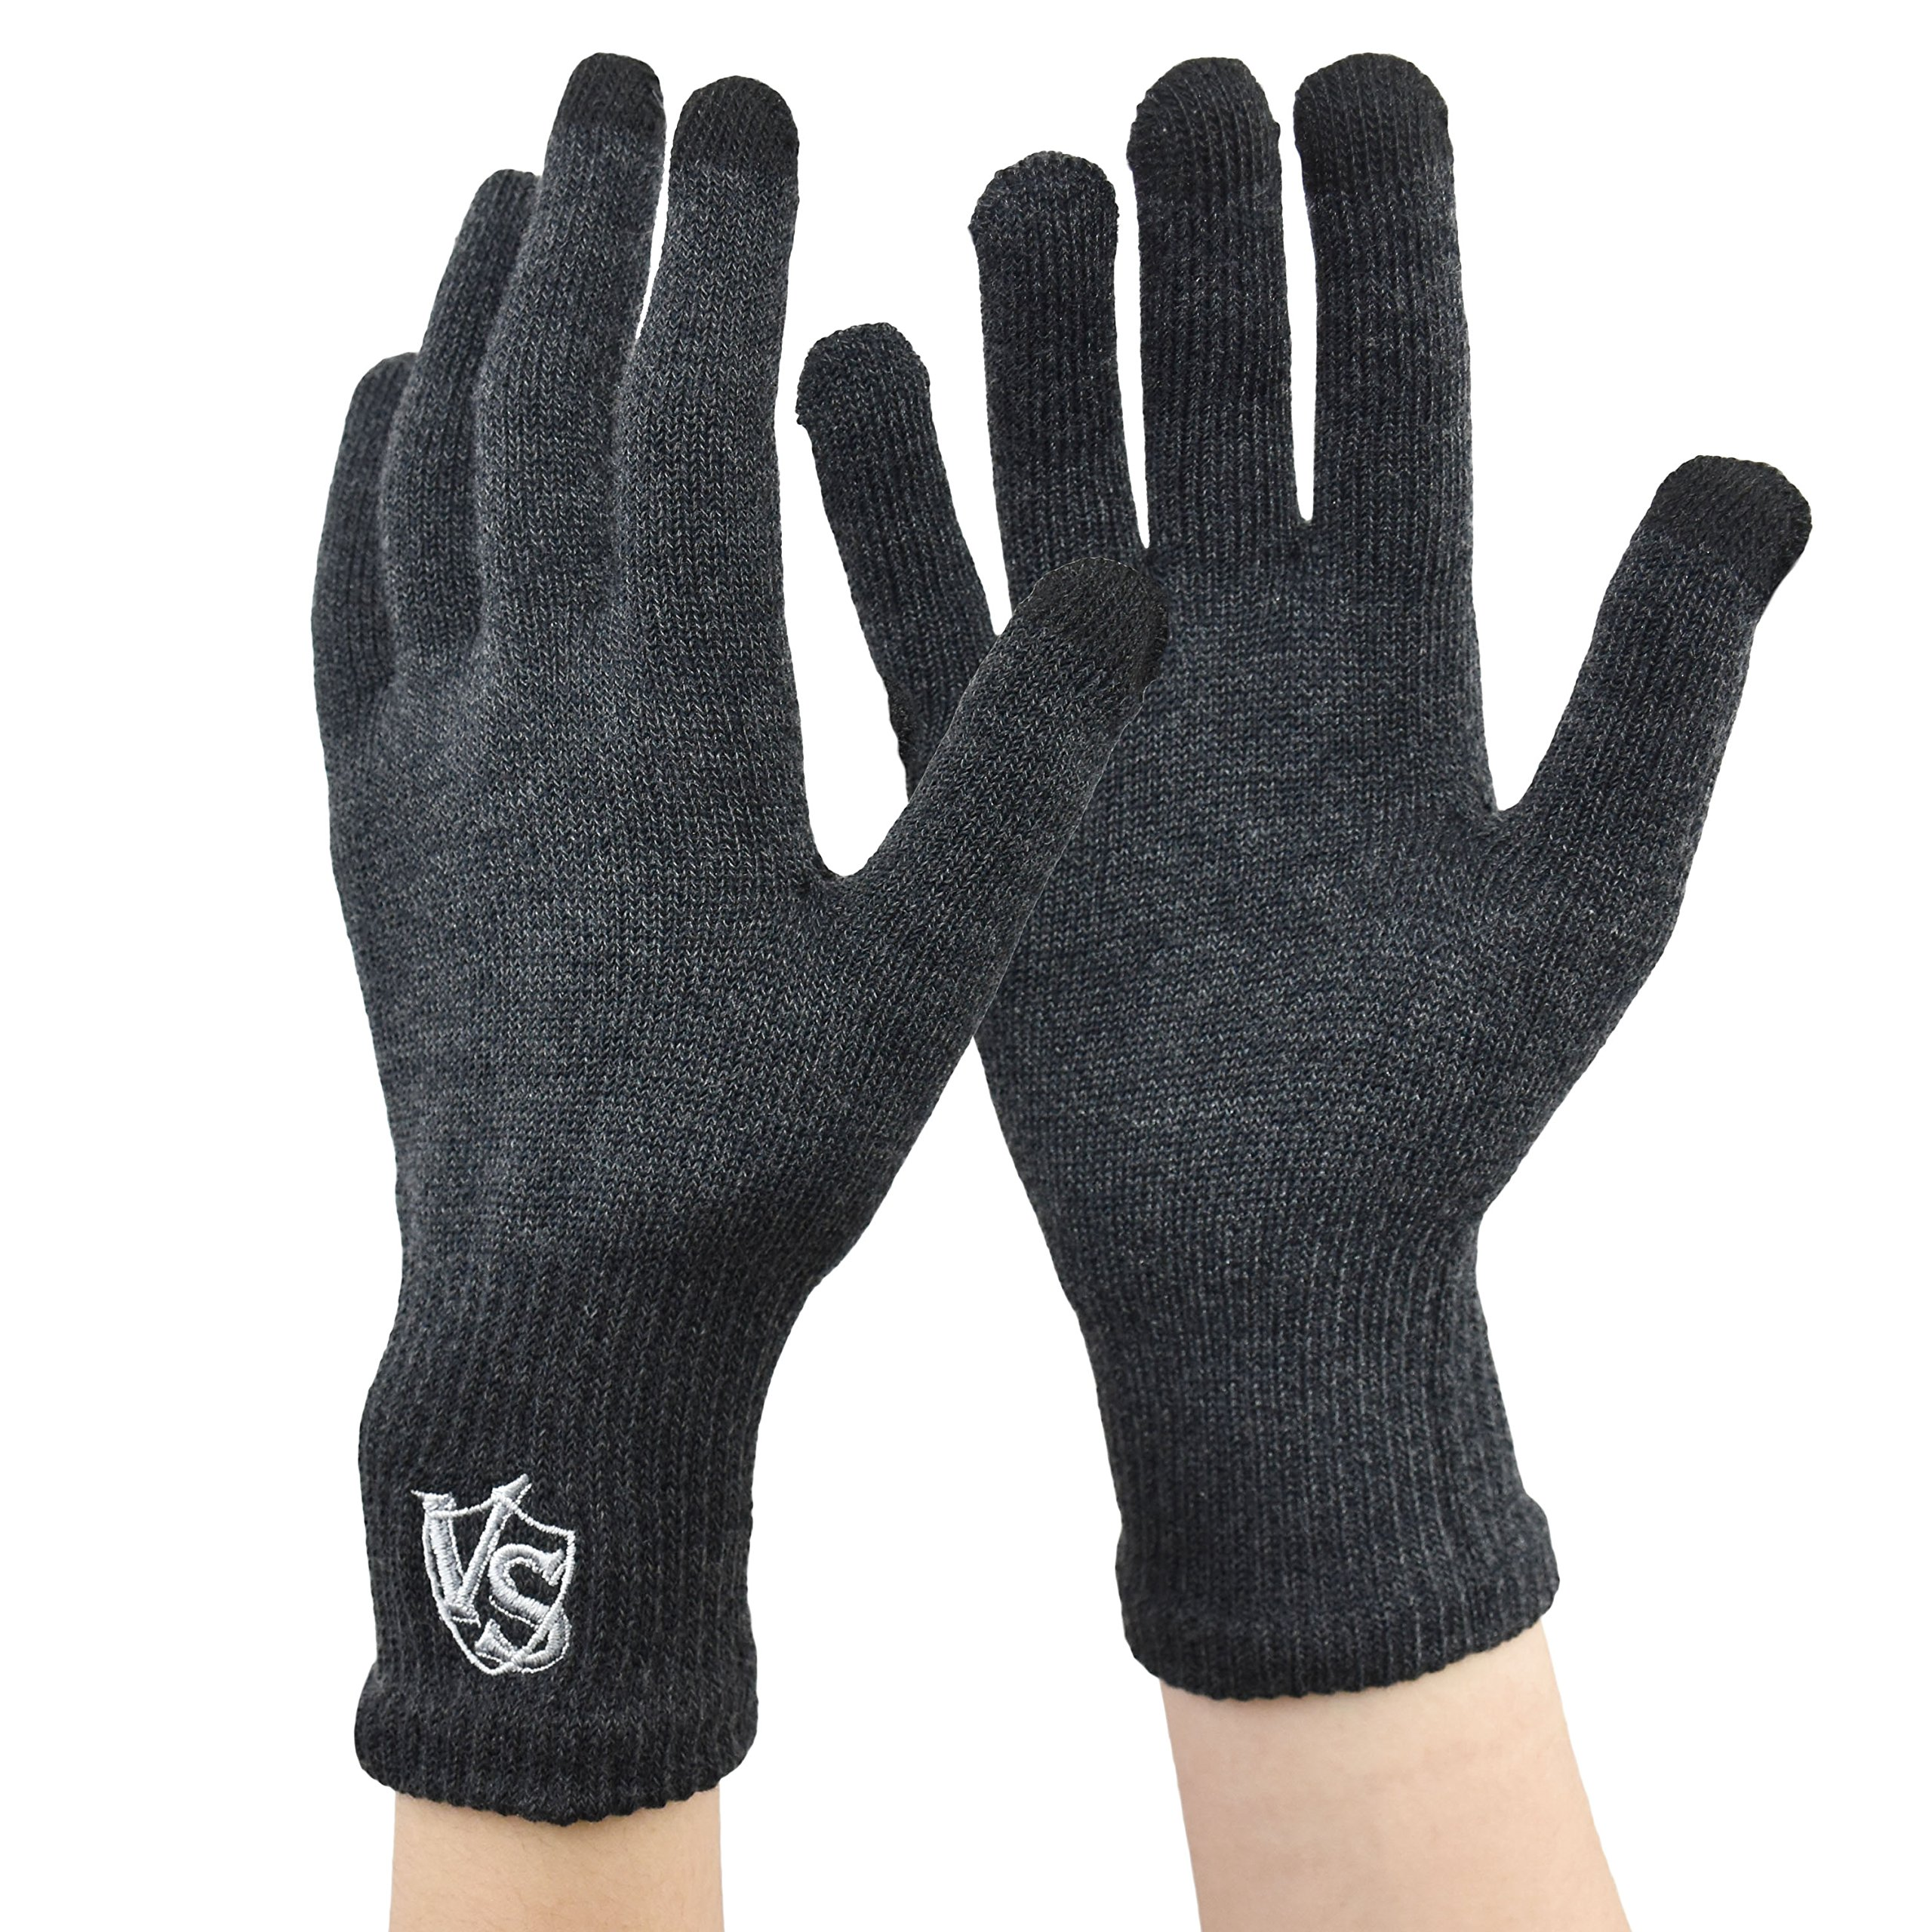 Vital Salveo-Office Stretchy Unisex Recovery Touchscreen, Running, Driving, Texting Arthritis Gloves for Smartphones (Pair)